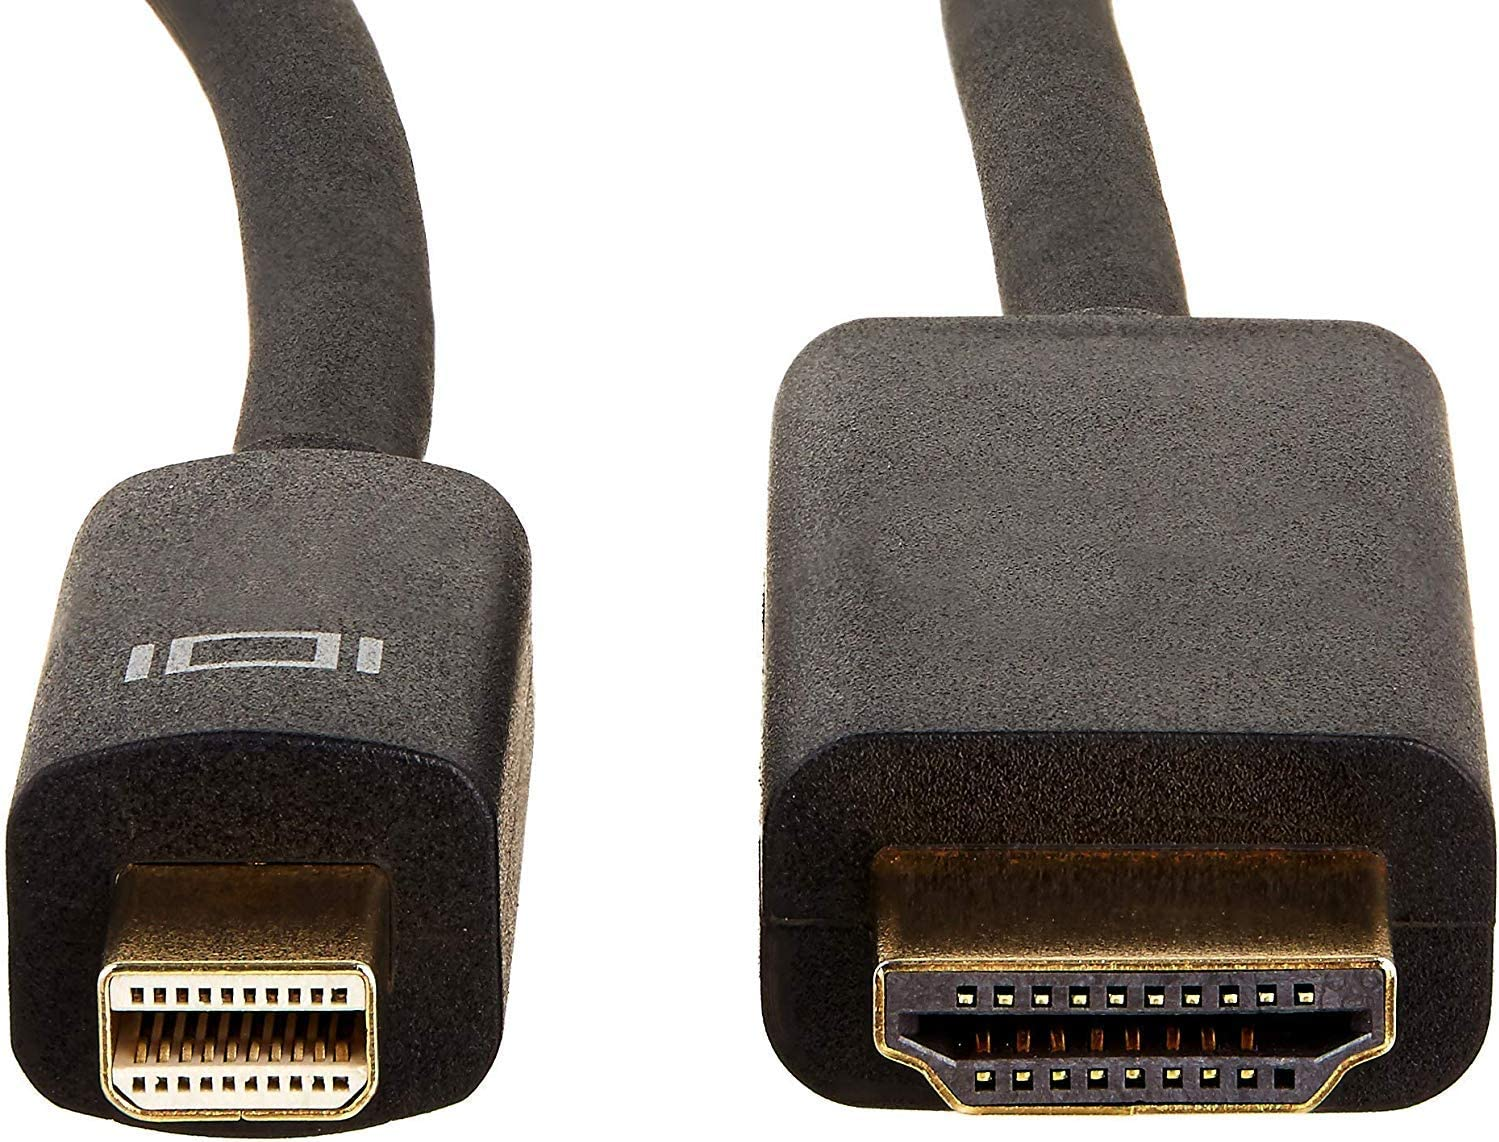 AmazonBasics Mini DisplayPort to HDMI Display Adapter Cable - 6 Feet